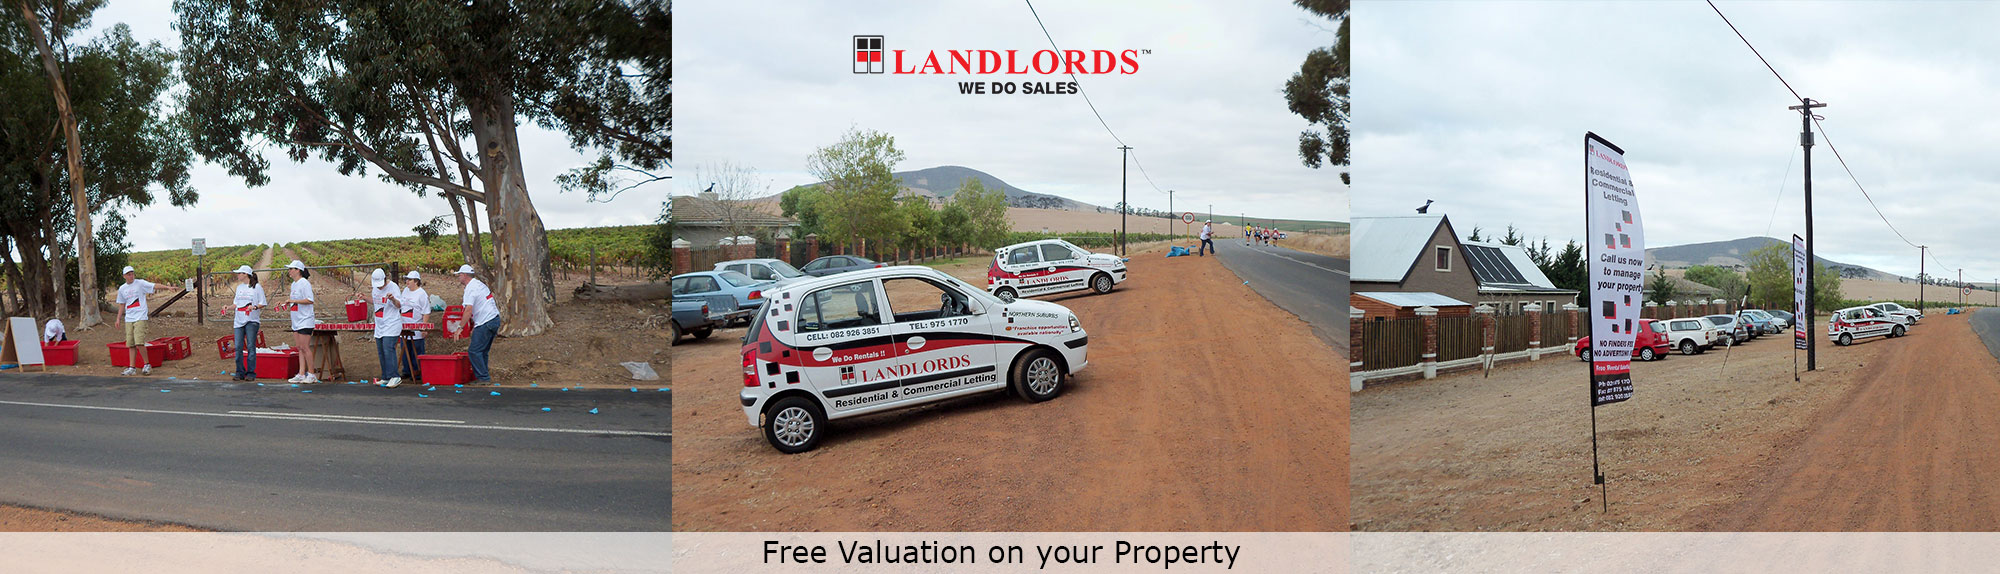 We do property sales. Free Valuation on your Property.